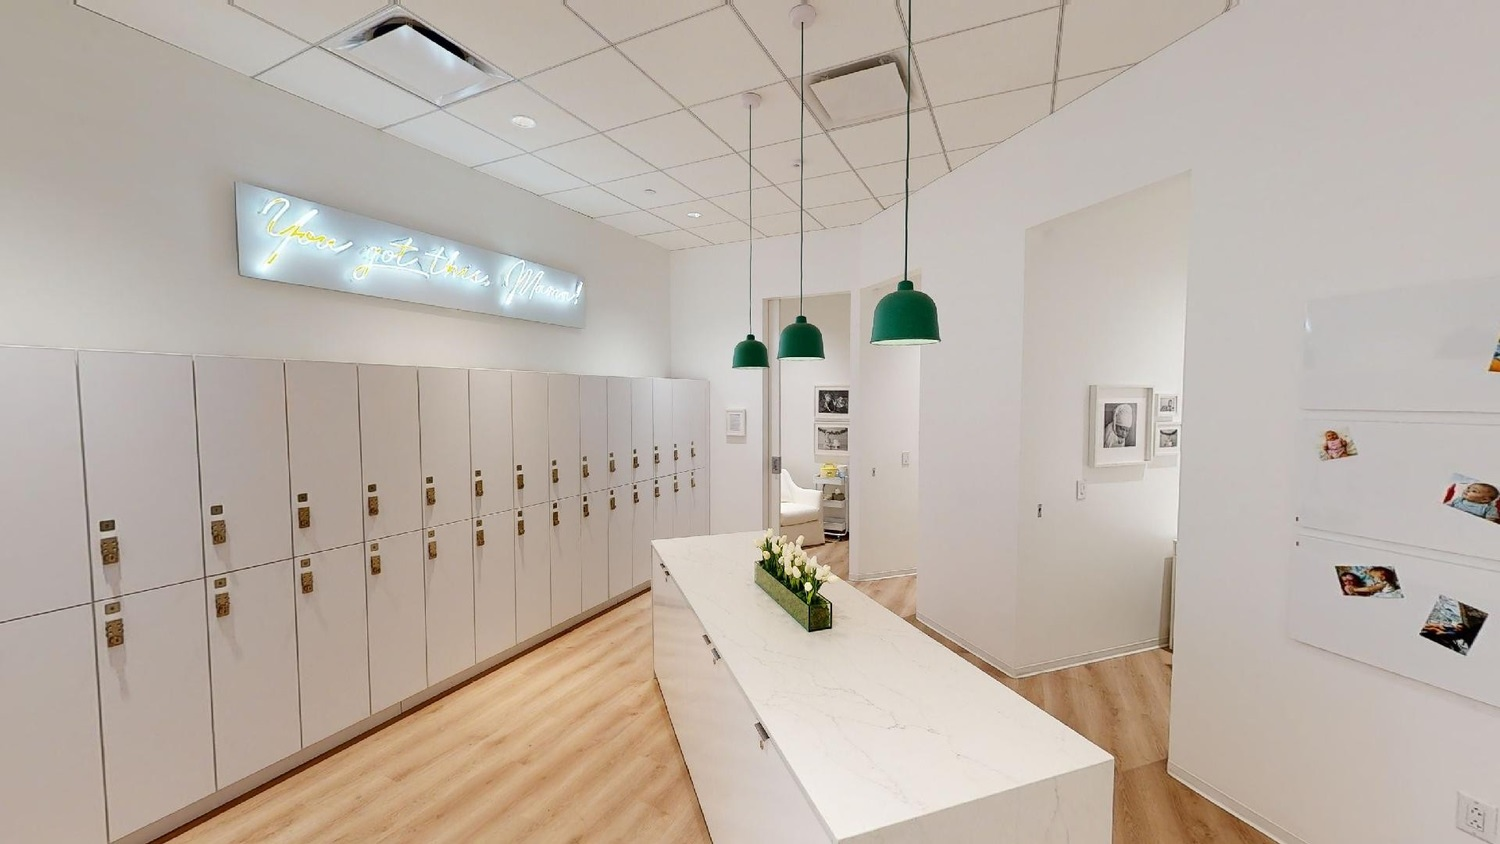 A room full of white lockers and and other furniture with a floor made of wooden panels.